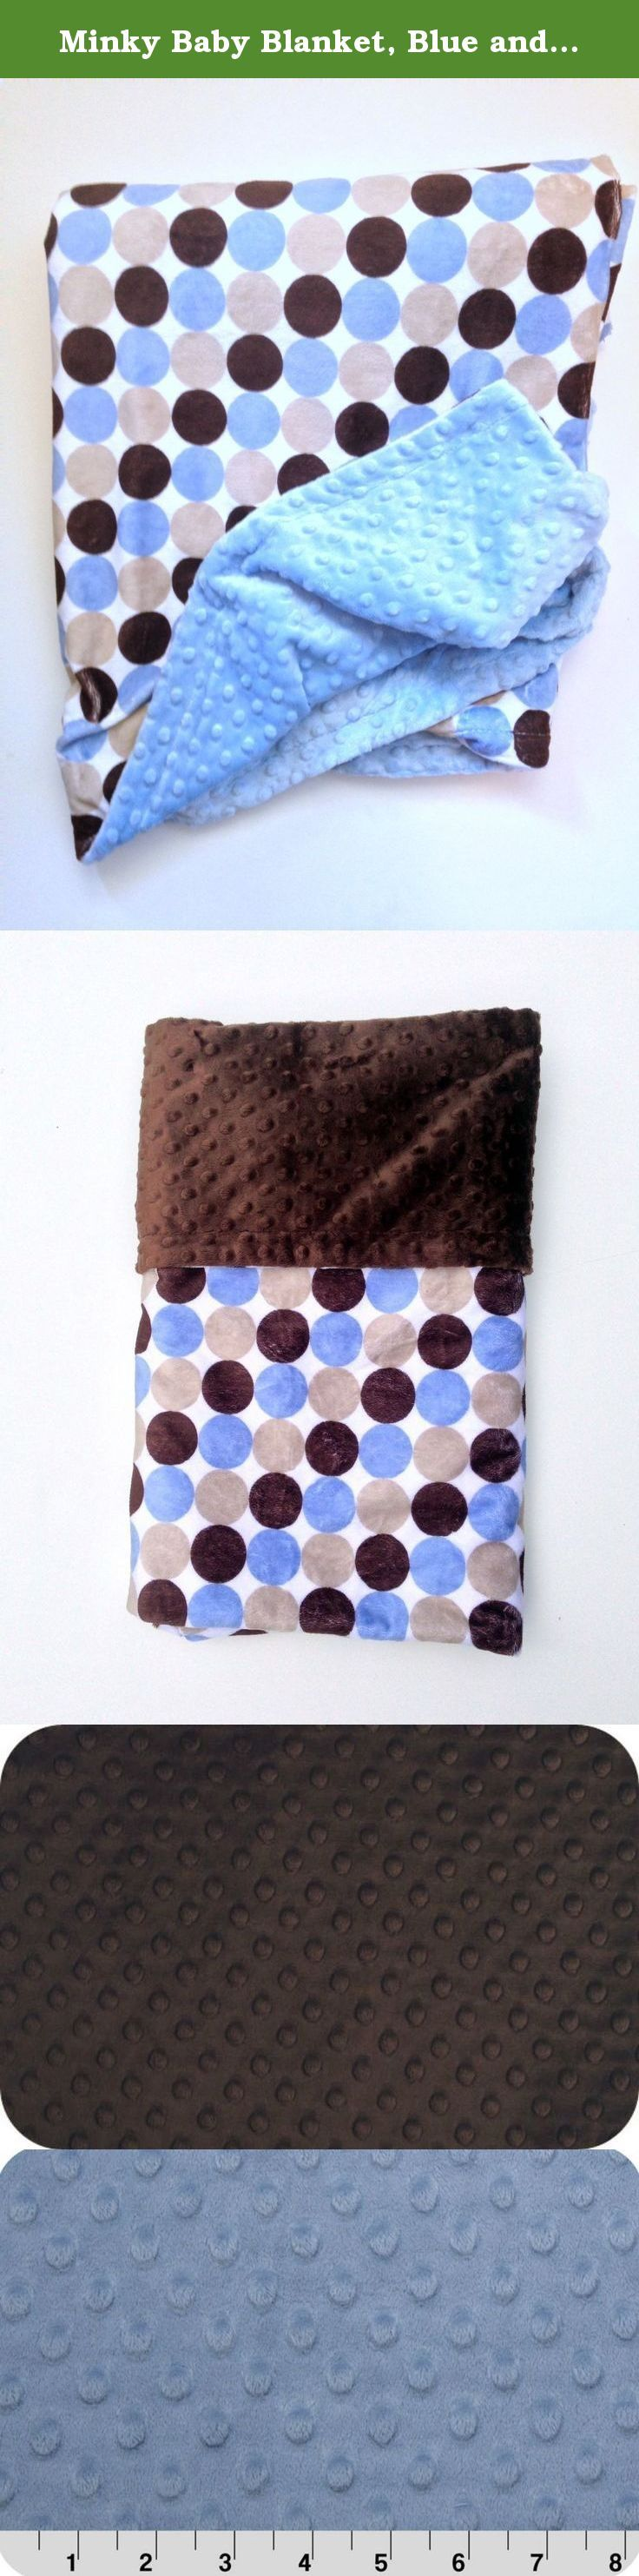 Minky Baby Blanket, Blue and Tan Infant Blanket ,Newborn Car Seat or Stroller Blanket Size 29 x 36. Double minky Infant blanket is extremely soft and cuddly . It has brown blue and tan retro circles on background of White with Minky Dot back. Great for strollers or car seat to tuck in after baby in seat. This blanket is great for all ages and occasions,I use the best minky products and high quality thread to ensure that you will have a durable blanket for years to come. The blanket is top...